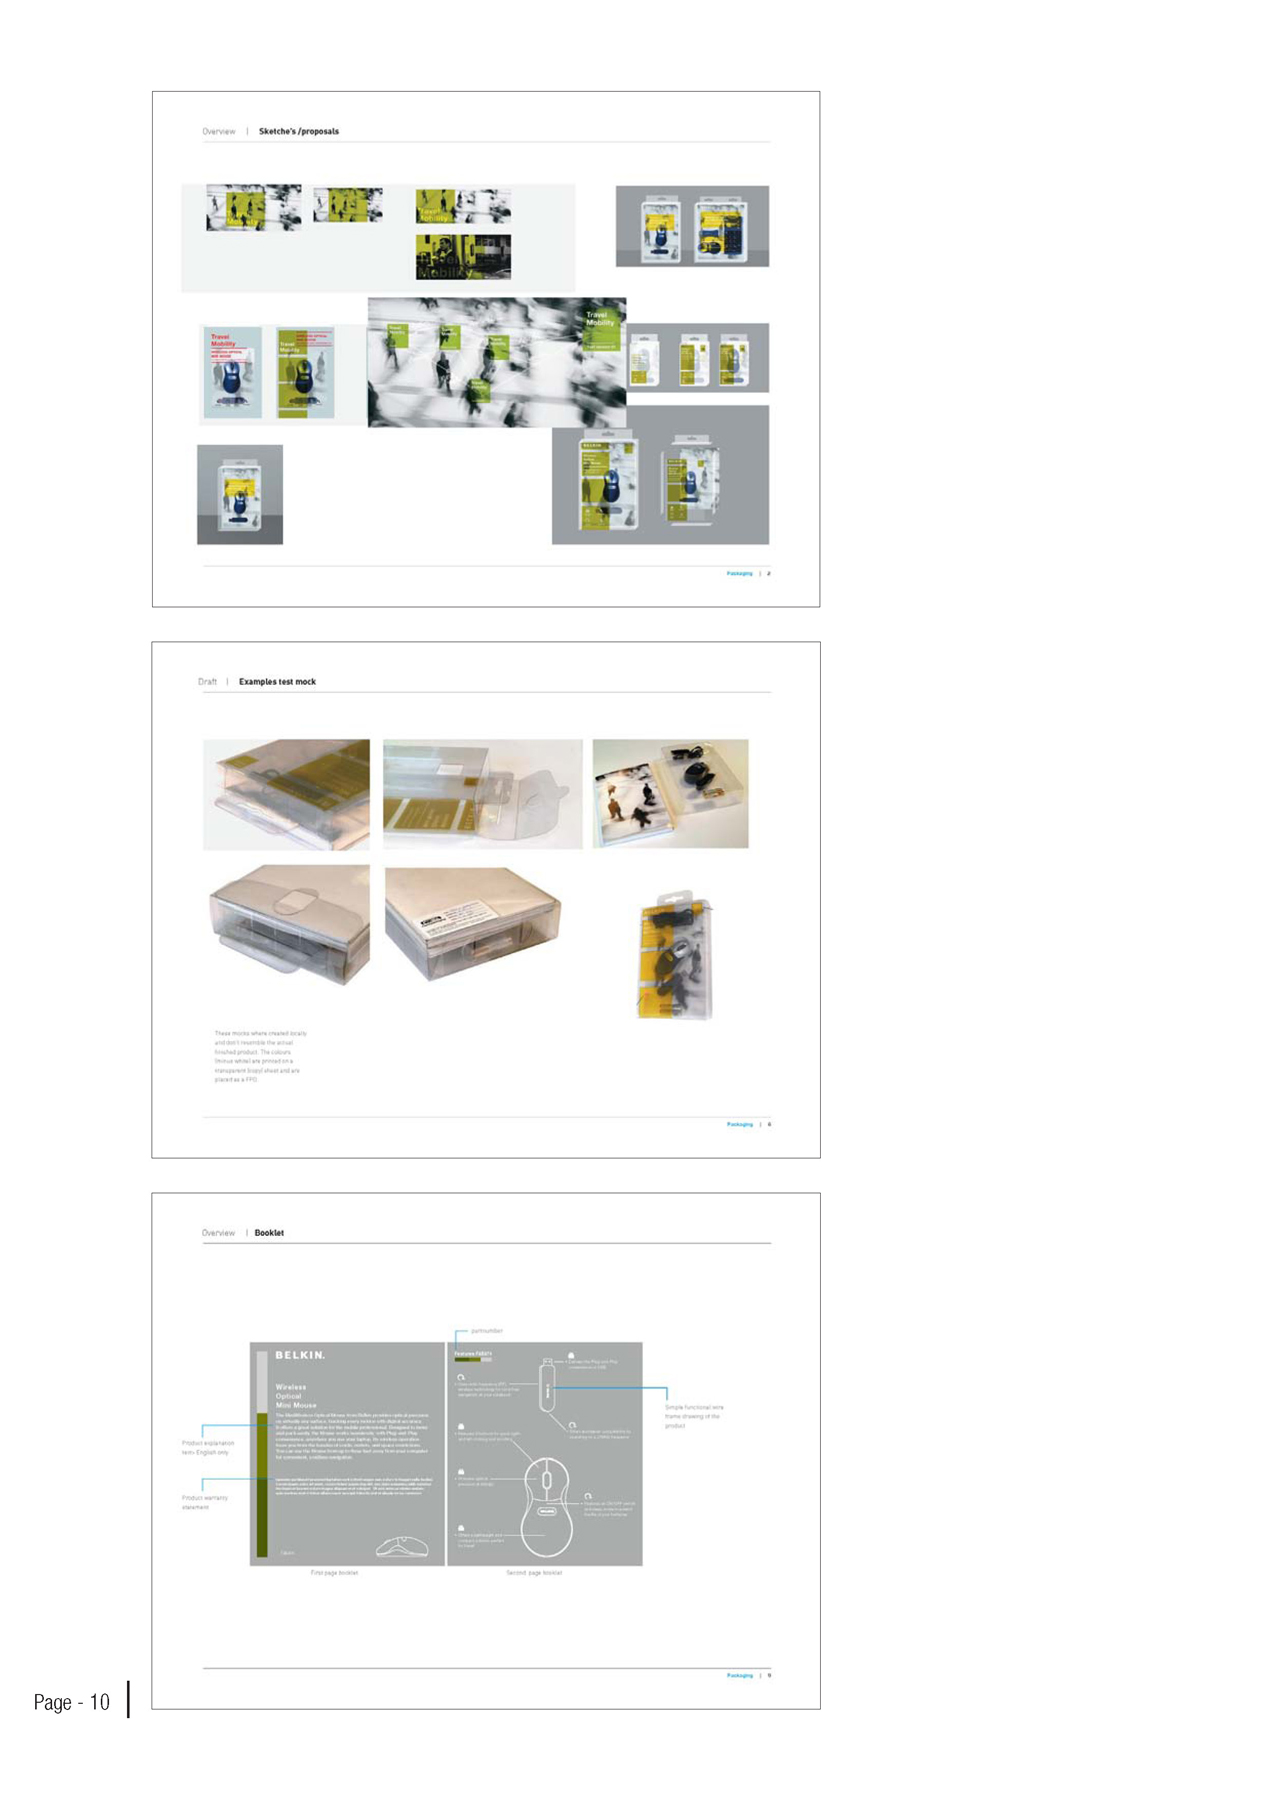 3-pilars-of-excellence_Page_10